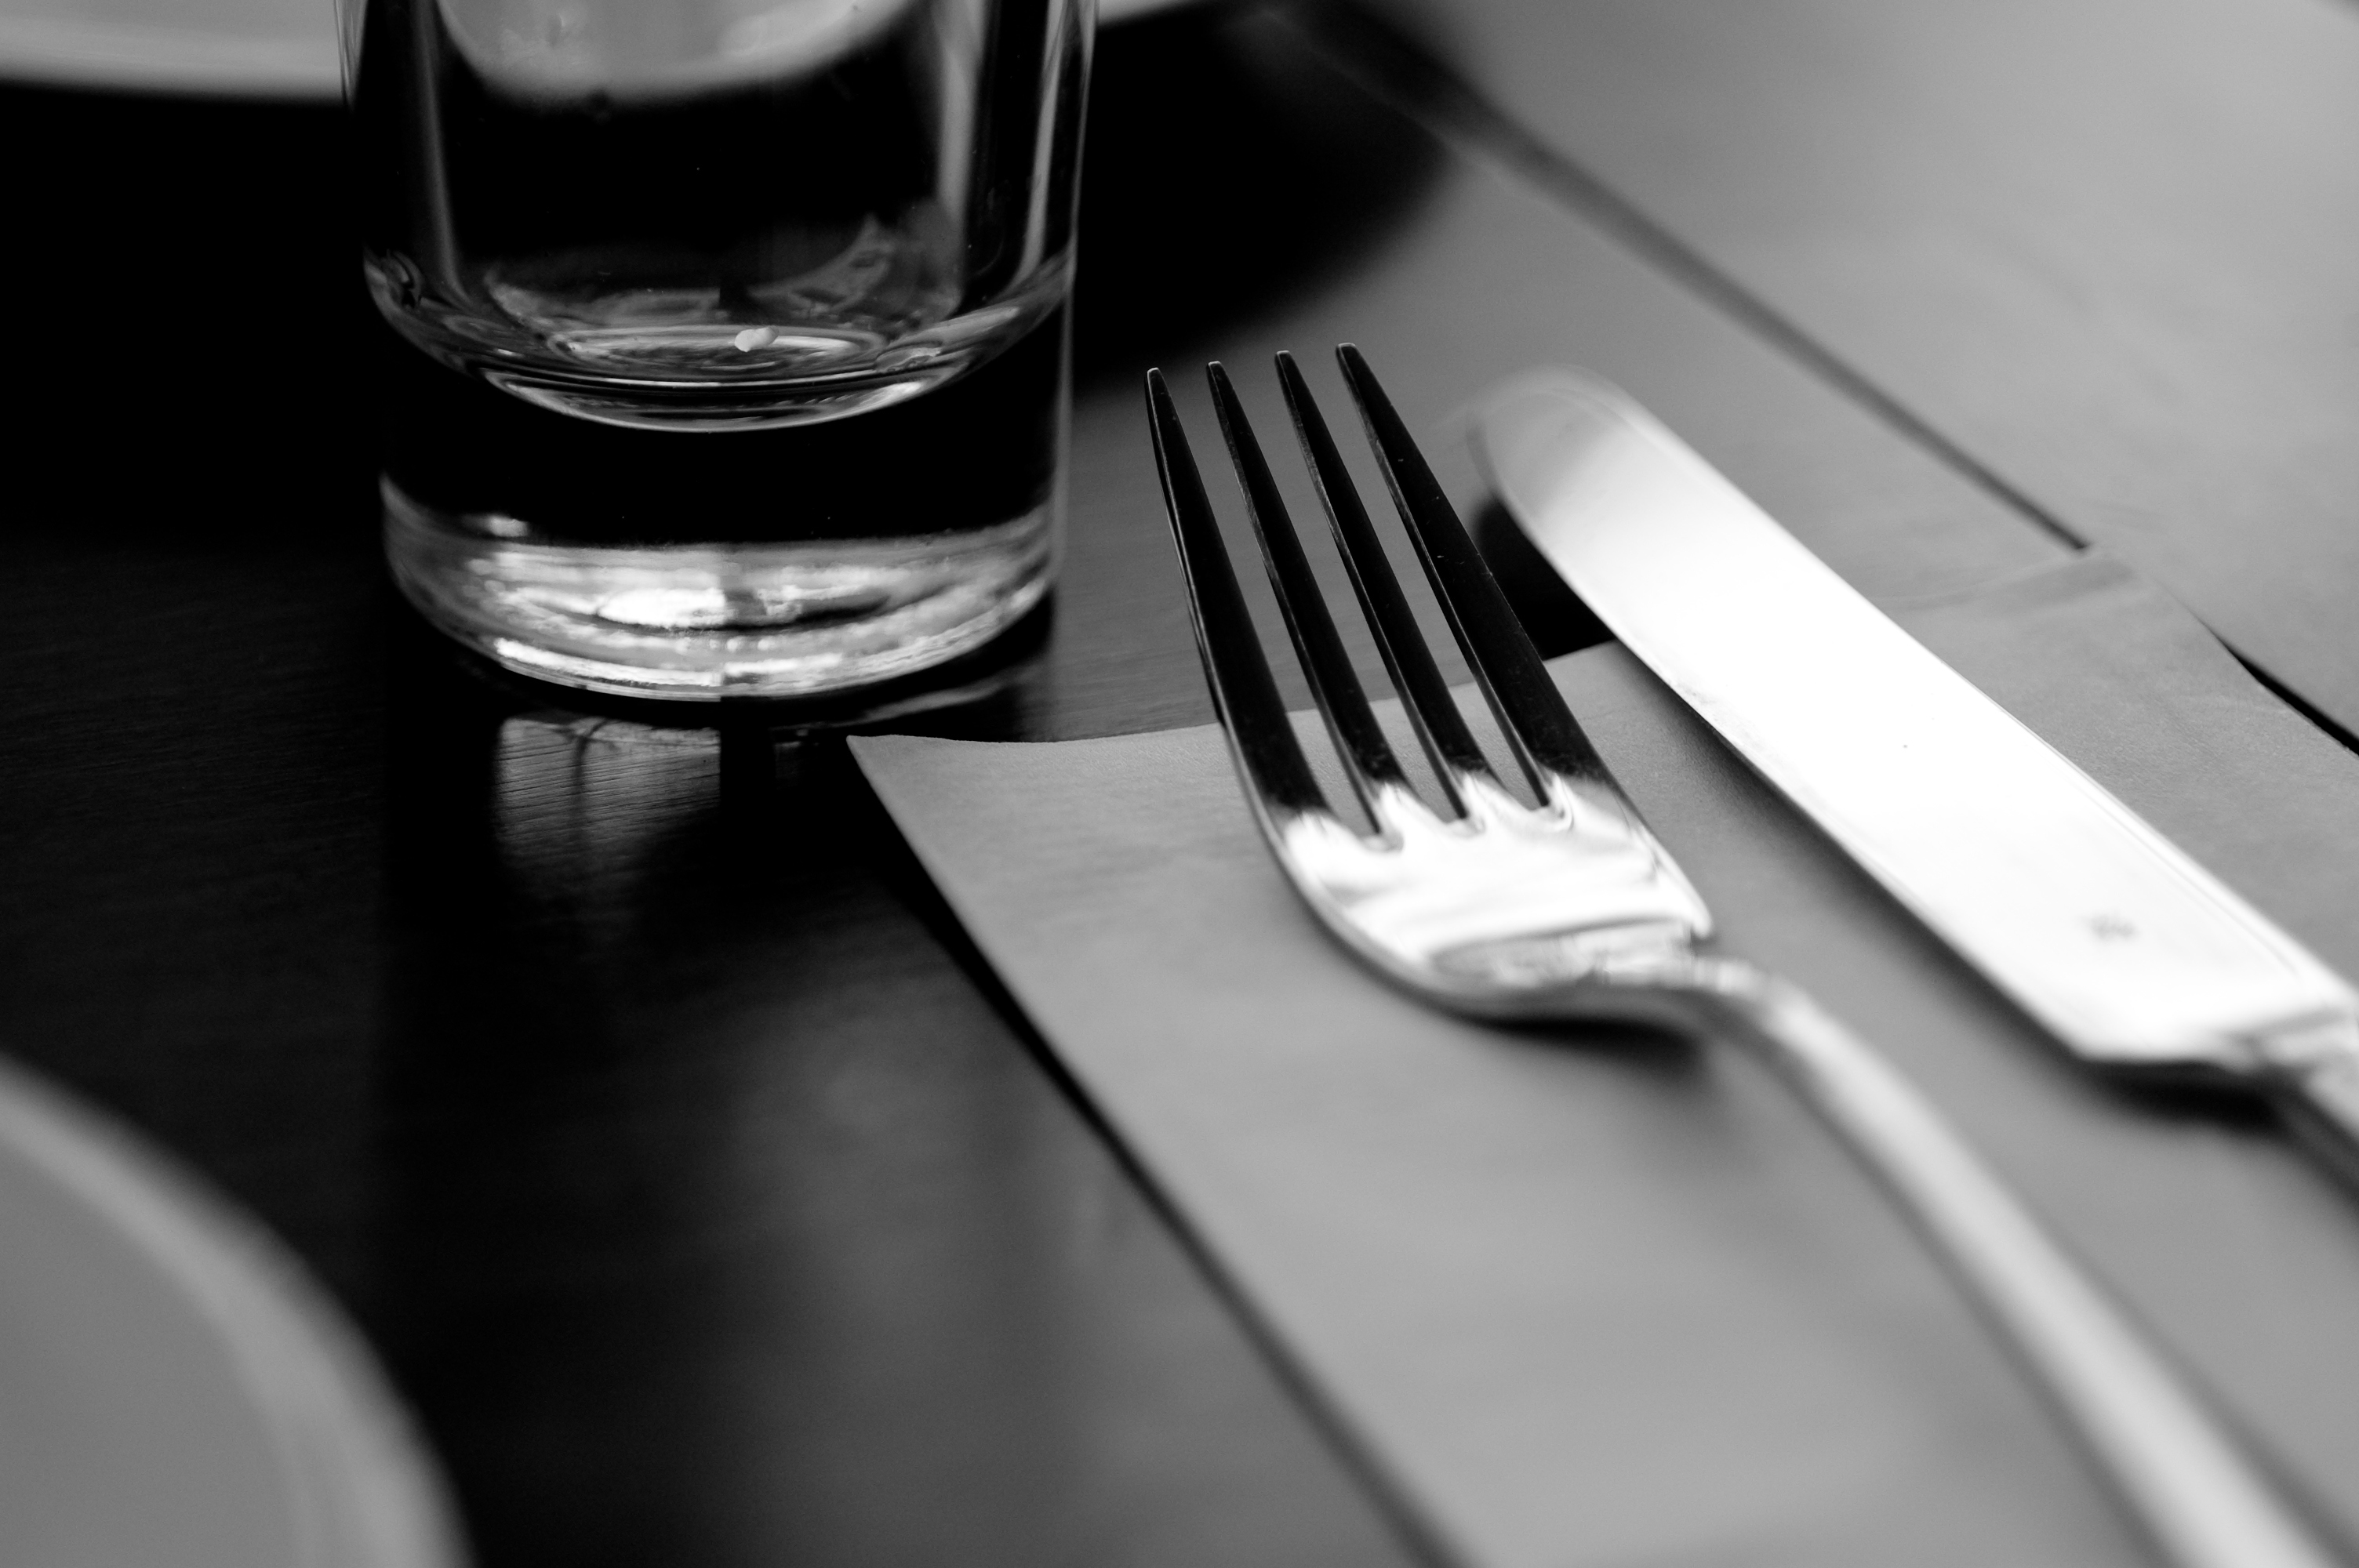 Table setting of fork, knife, napkin, glass and plate at cafe.